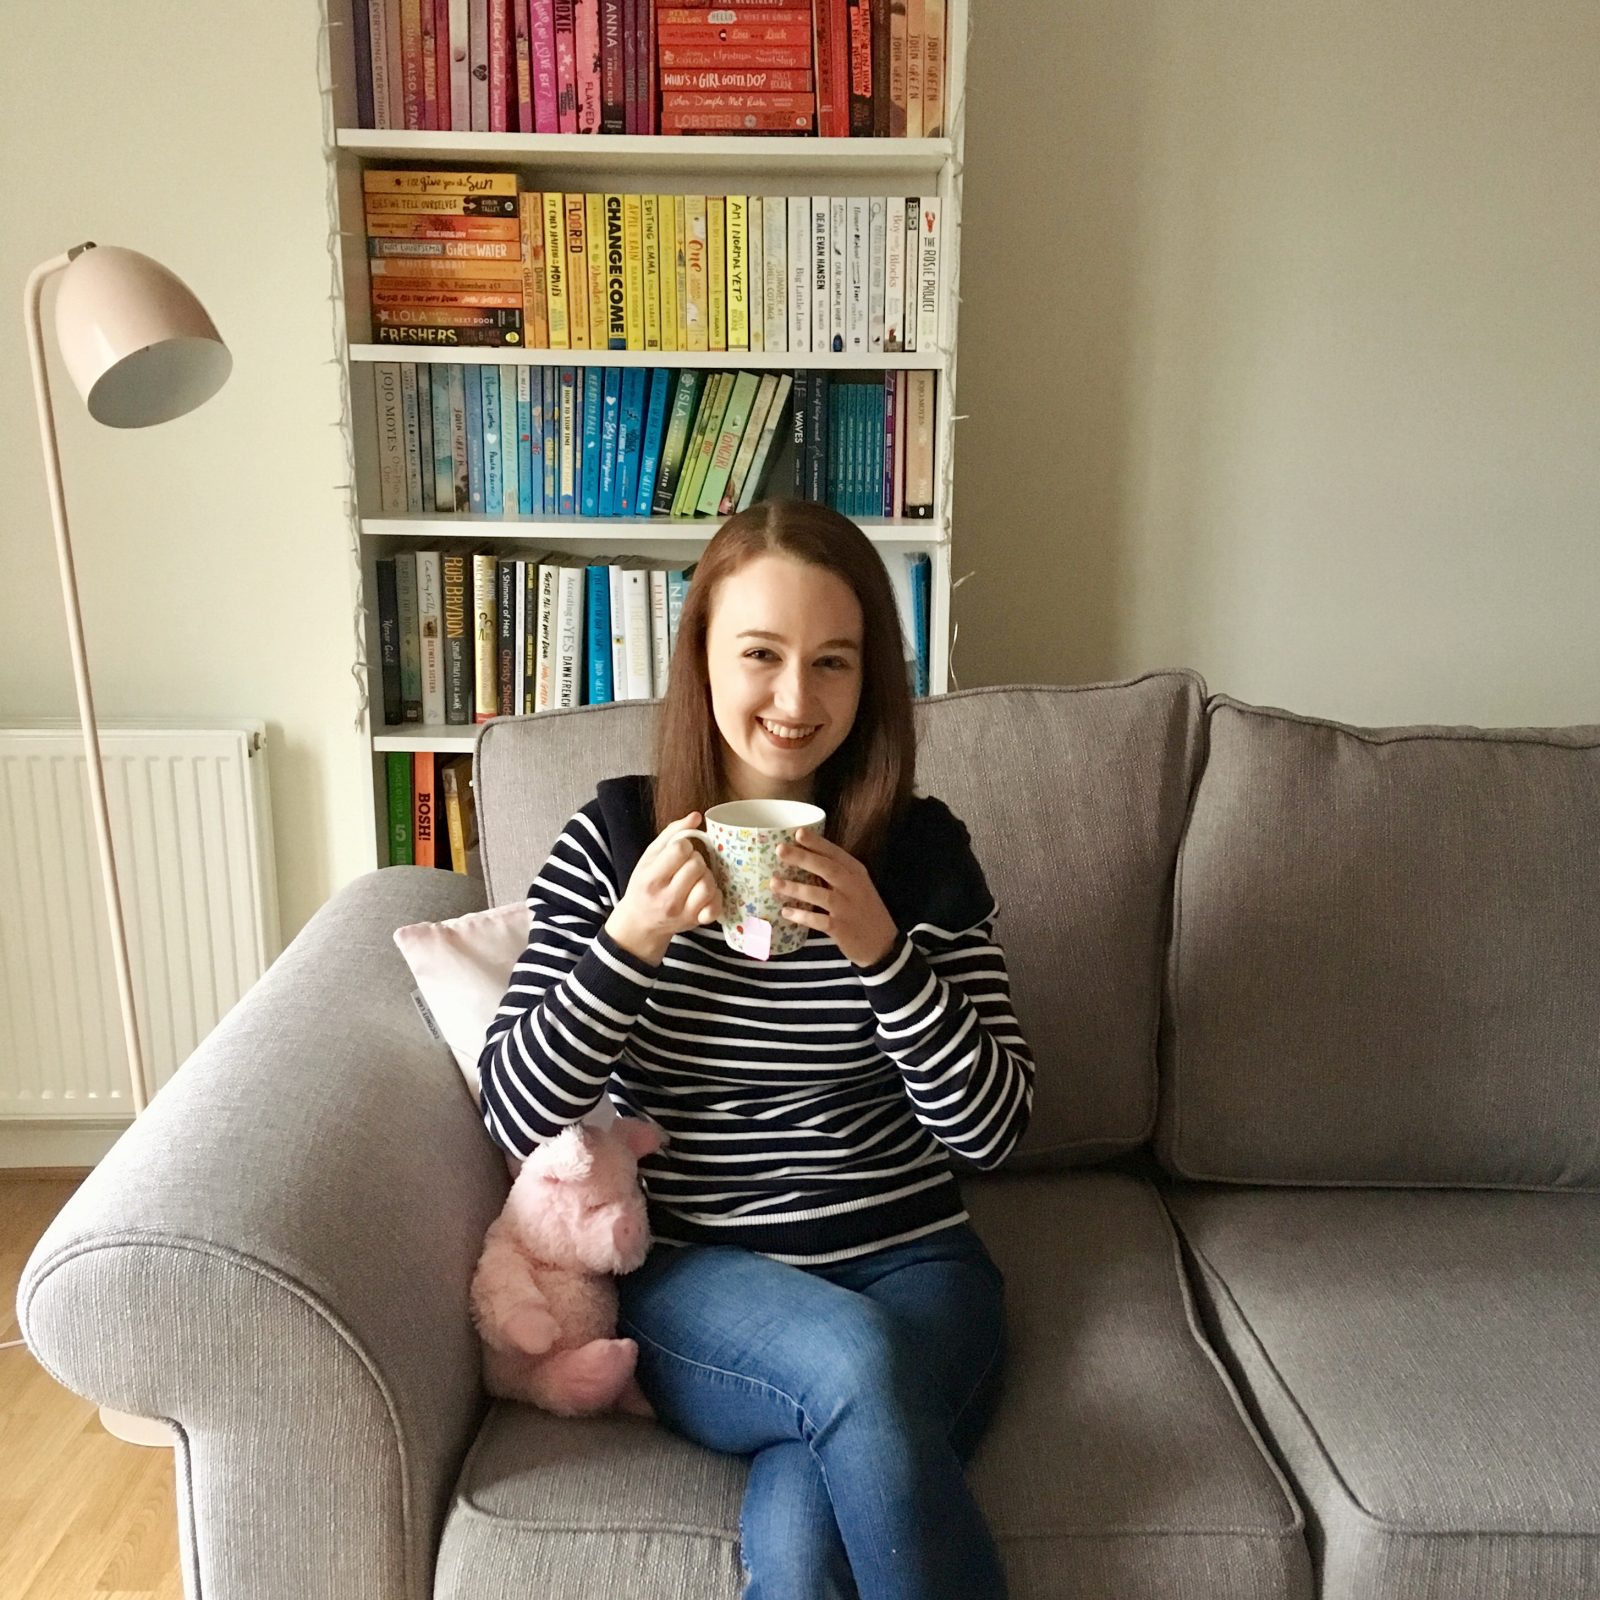 pippa sat on grey sofa holding cup of tea and smiling, with rainbow bookshelves in background